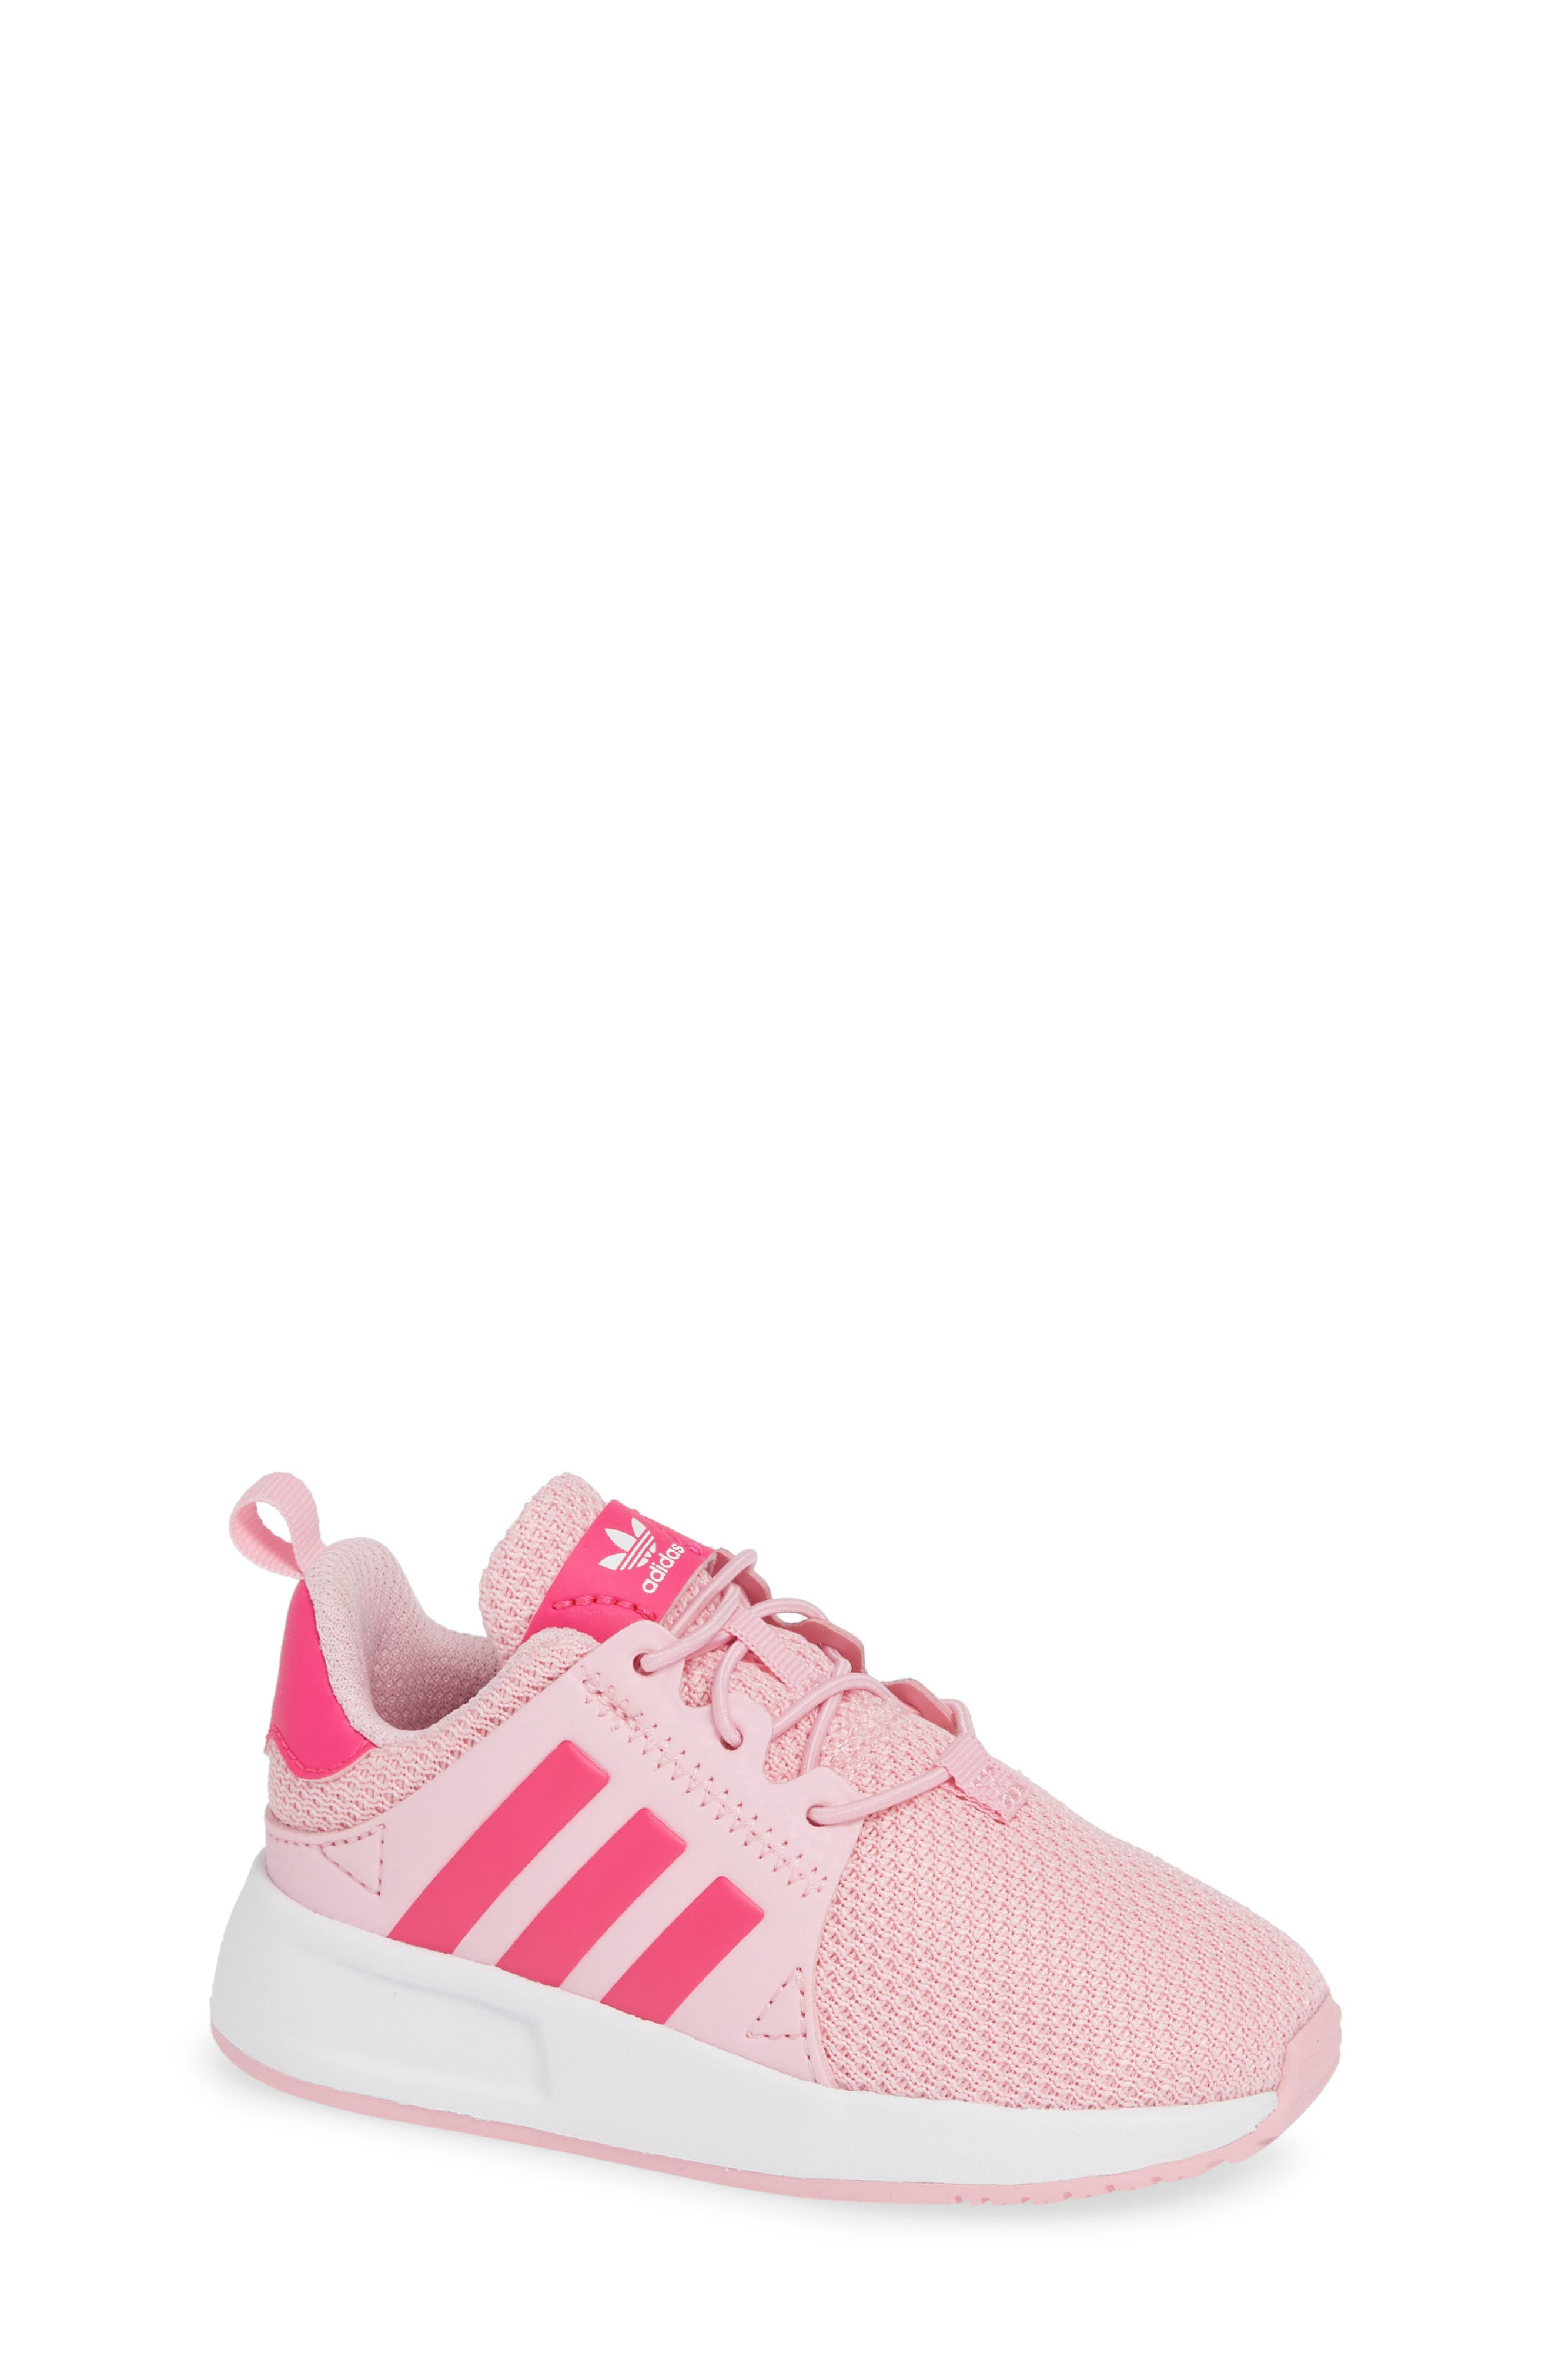 ADIDAS,                             X_PLR Sneaker,                             Main thumbnail 1, color,                             TRUE PINK/ SHOCK PINK/ WHITE